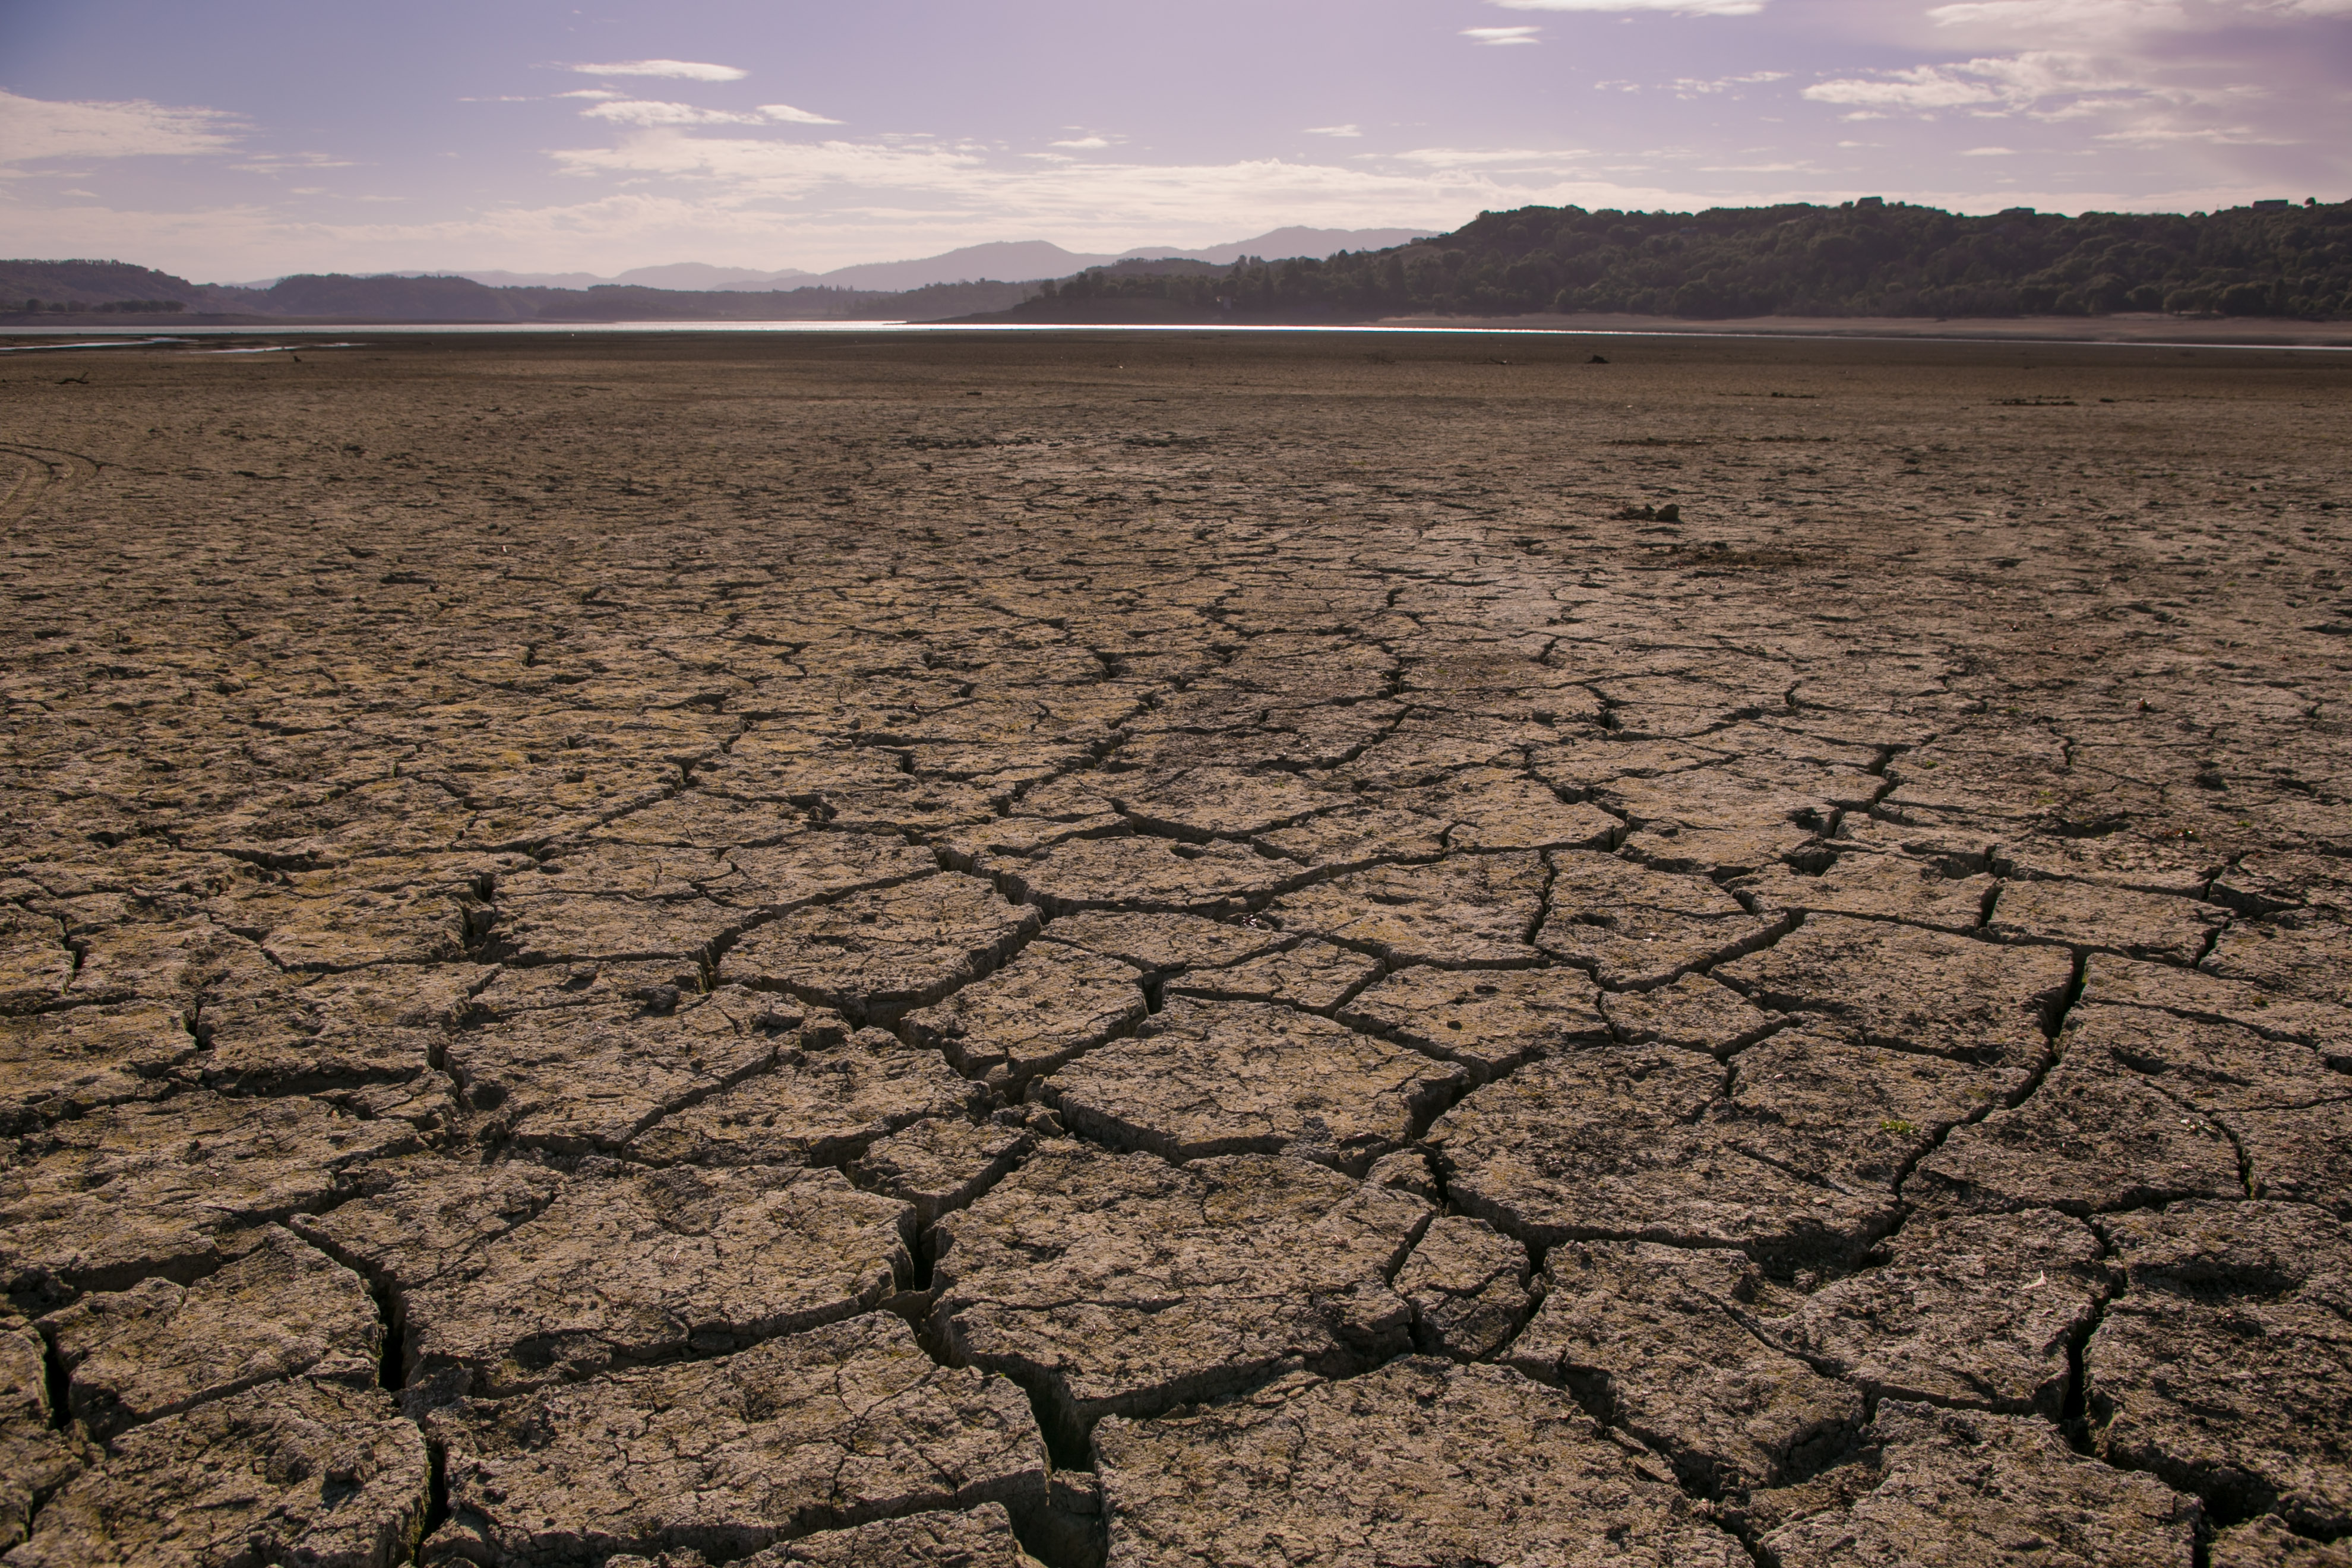 California's Drought Becomes Critical